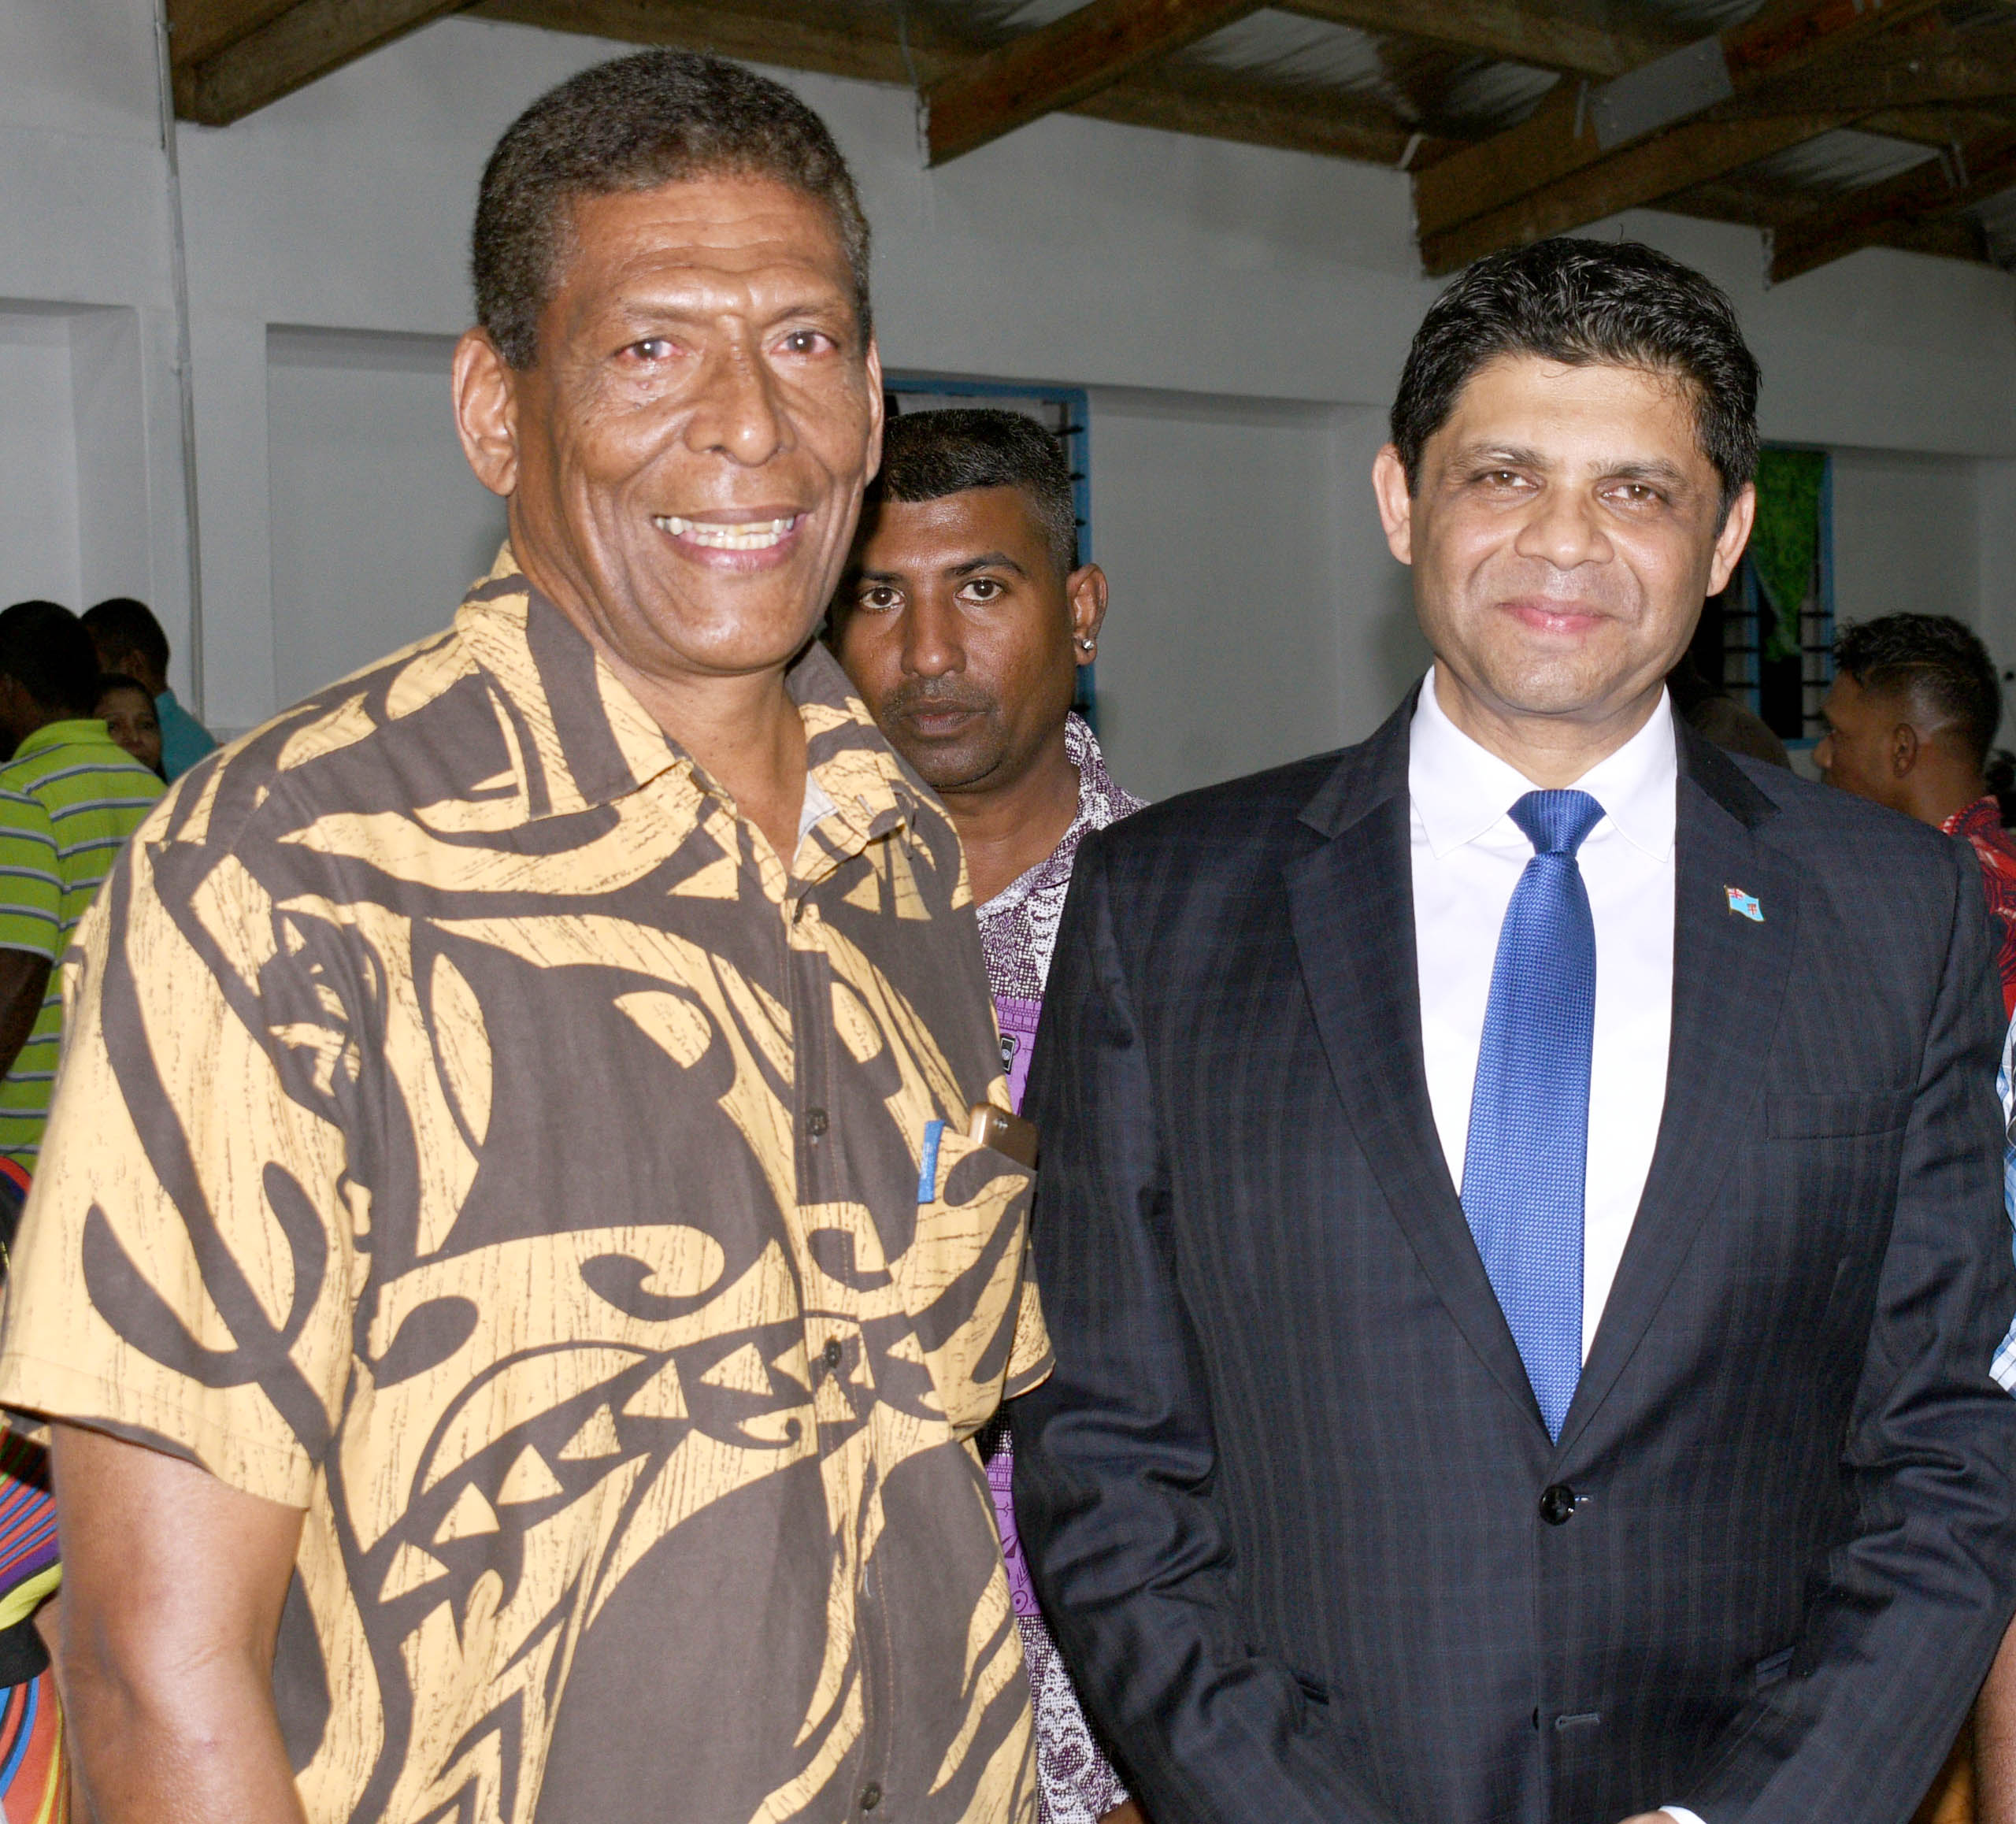 Acting Prime Minister and Attorney-General Aiyaz Sayed-Khaiyum with Omkar community leader and retired Republic of Fiji Military Forces officer Major Samuela Tupou on September 13, 2017.  Photo: Vilimoni Vaganalau